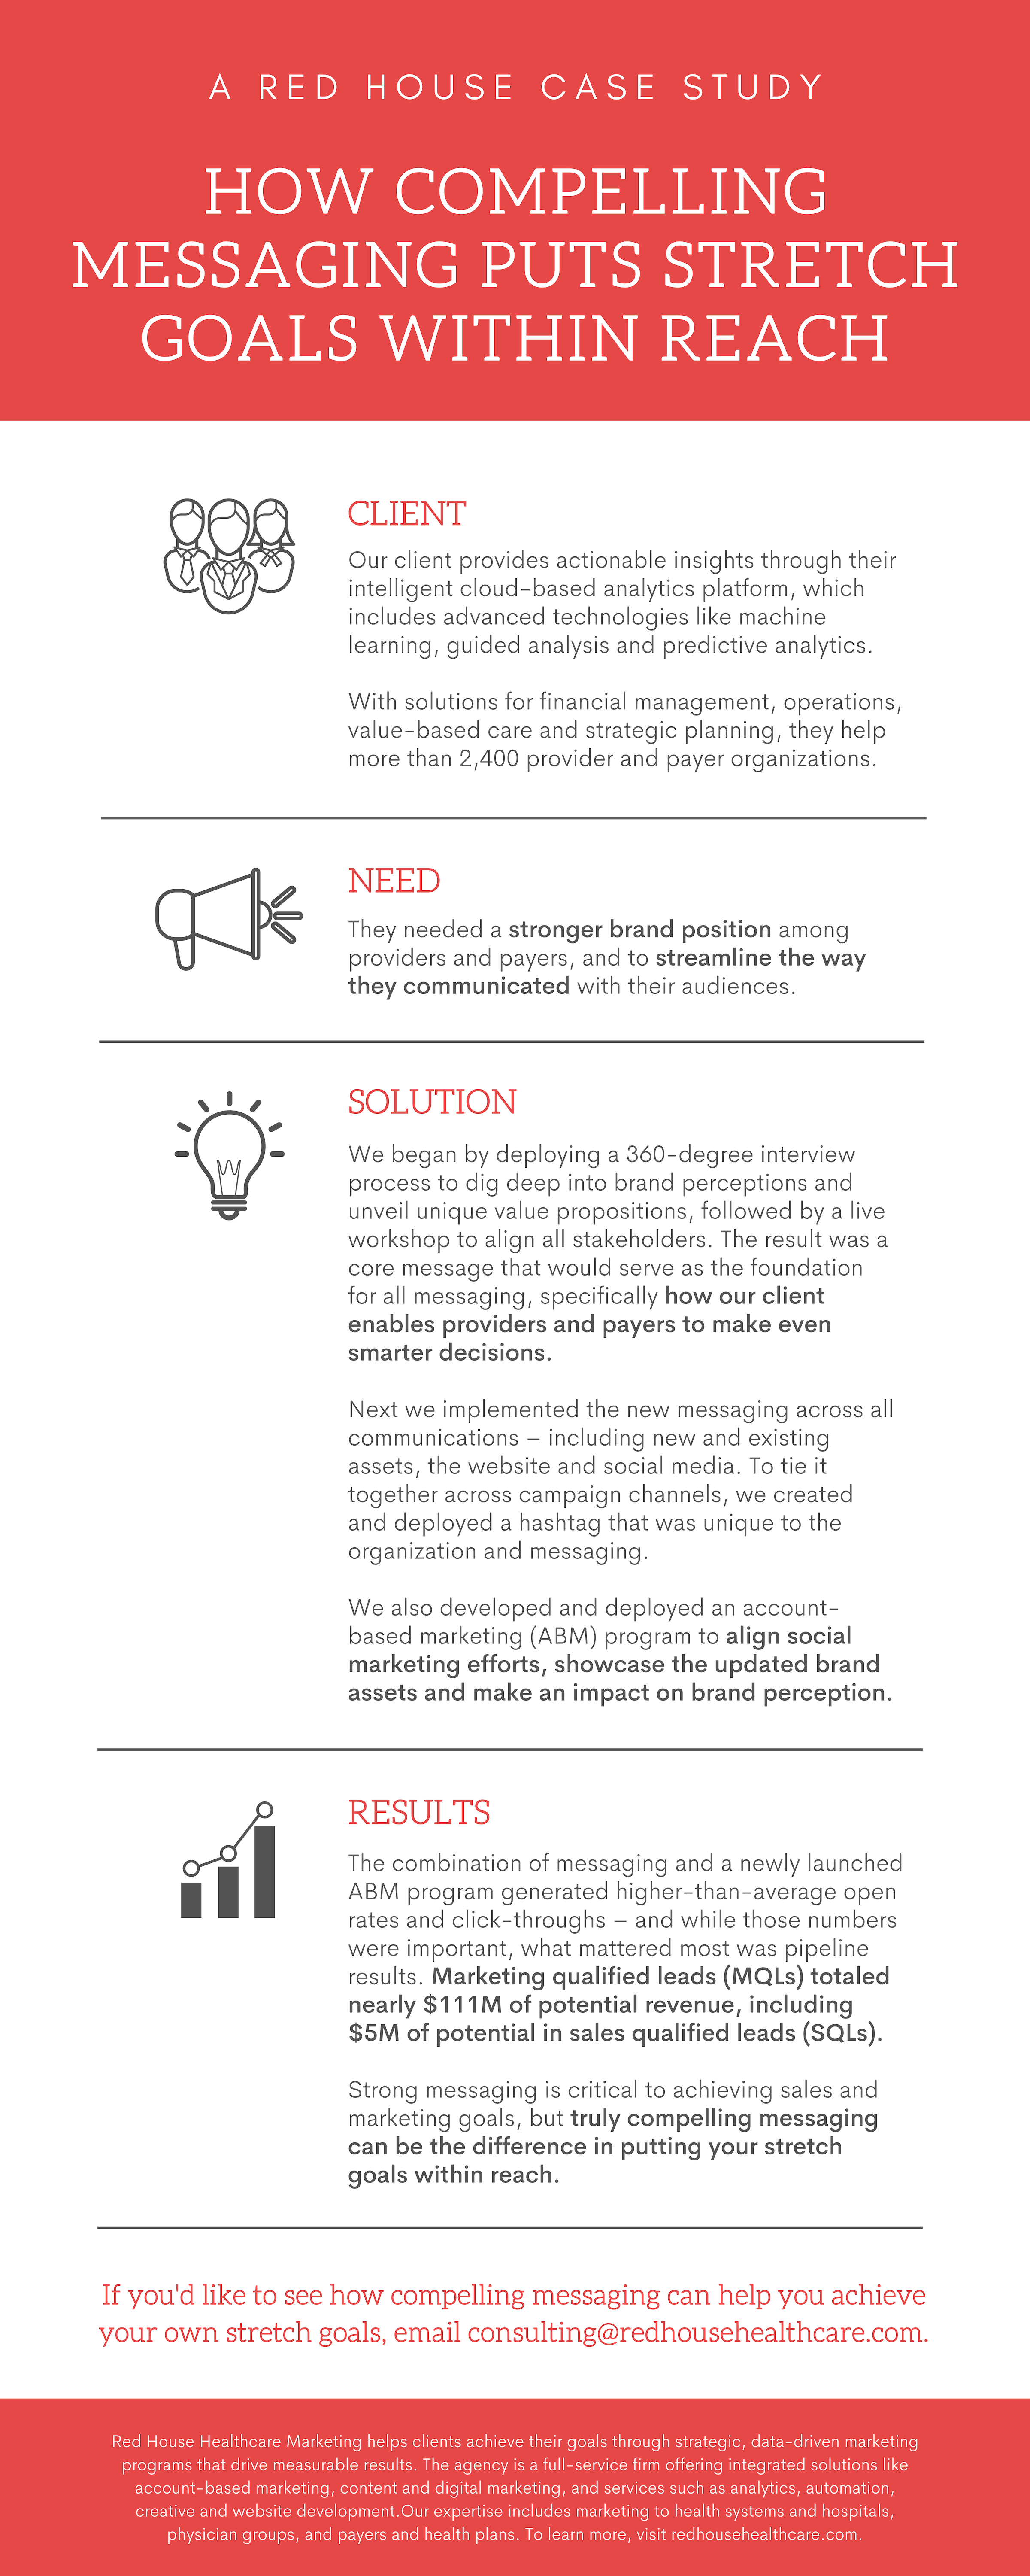 Case Study, How Compelling Messaging Puts Stretch Goals Within Reach; strategic messaging, ABM, Account-Based Marketing, case study infographic, case study infographic, Red House B2B Marketing, Red House Healthcare Marketing